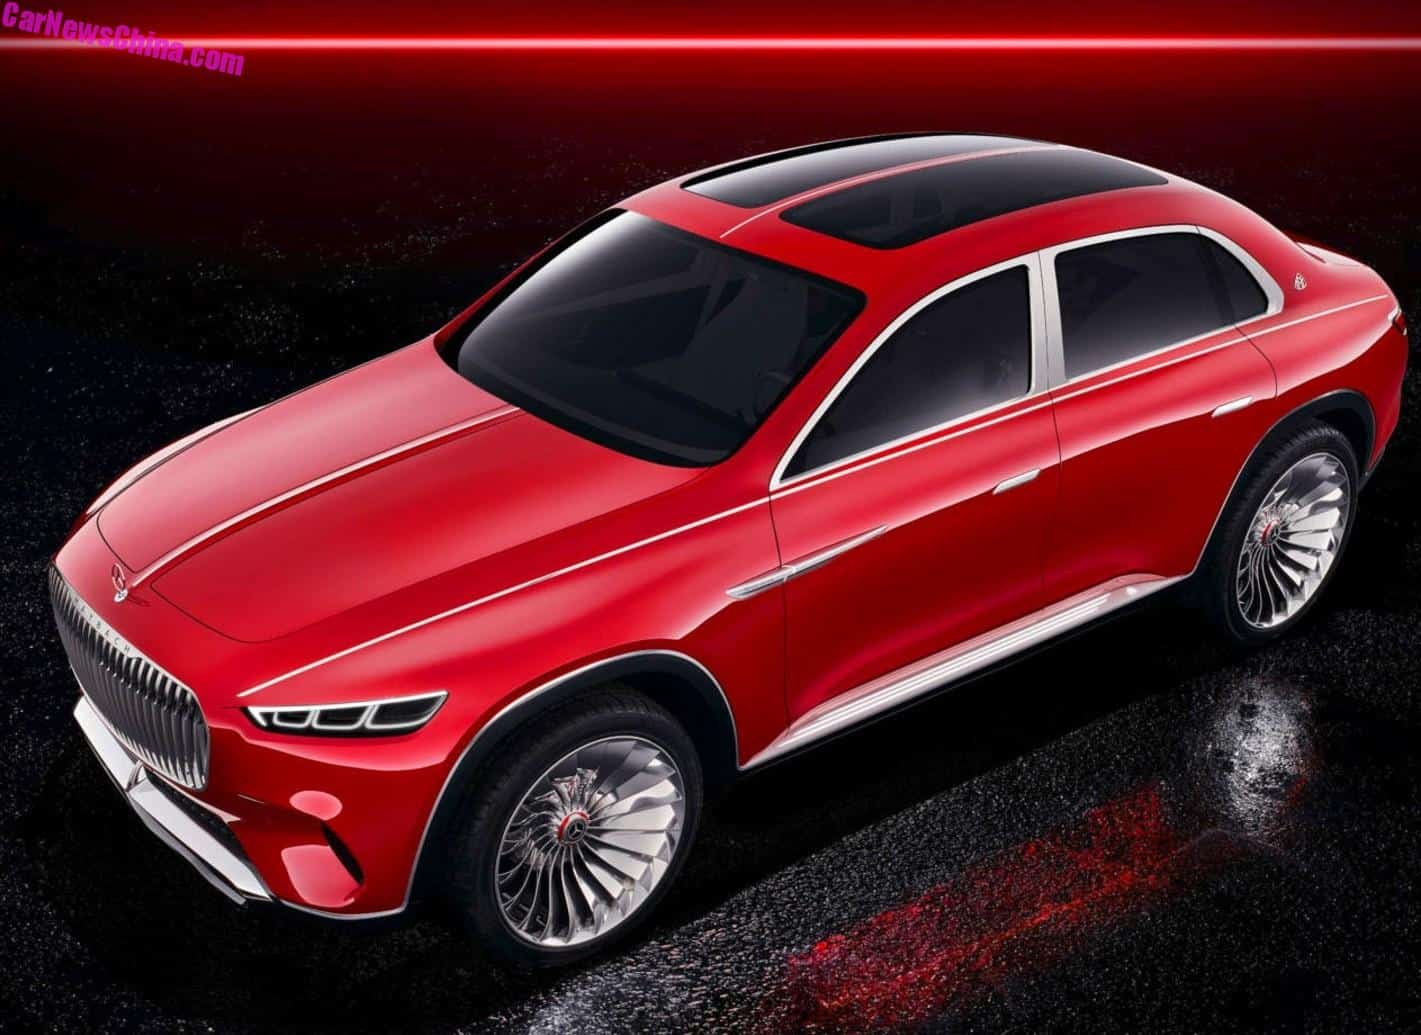 Leaked Photos of the Mercedes-Maybach SUV Concept Leaked